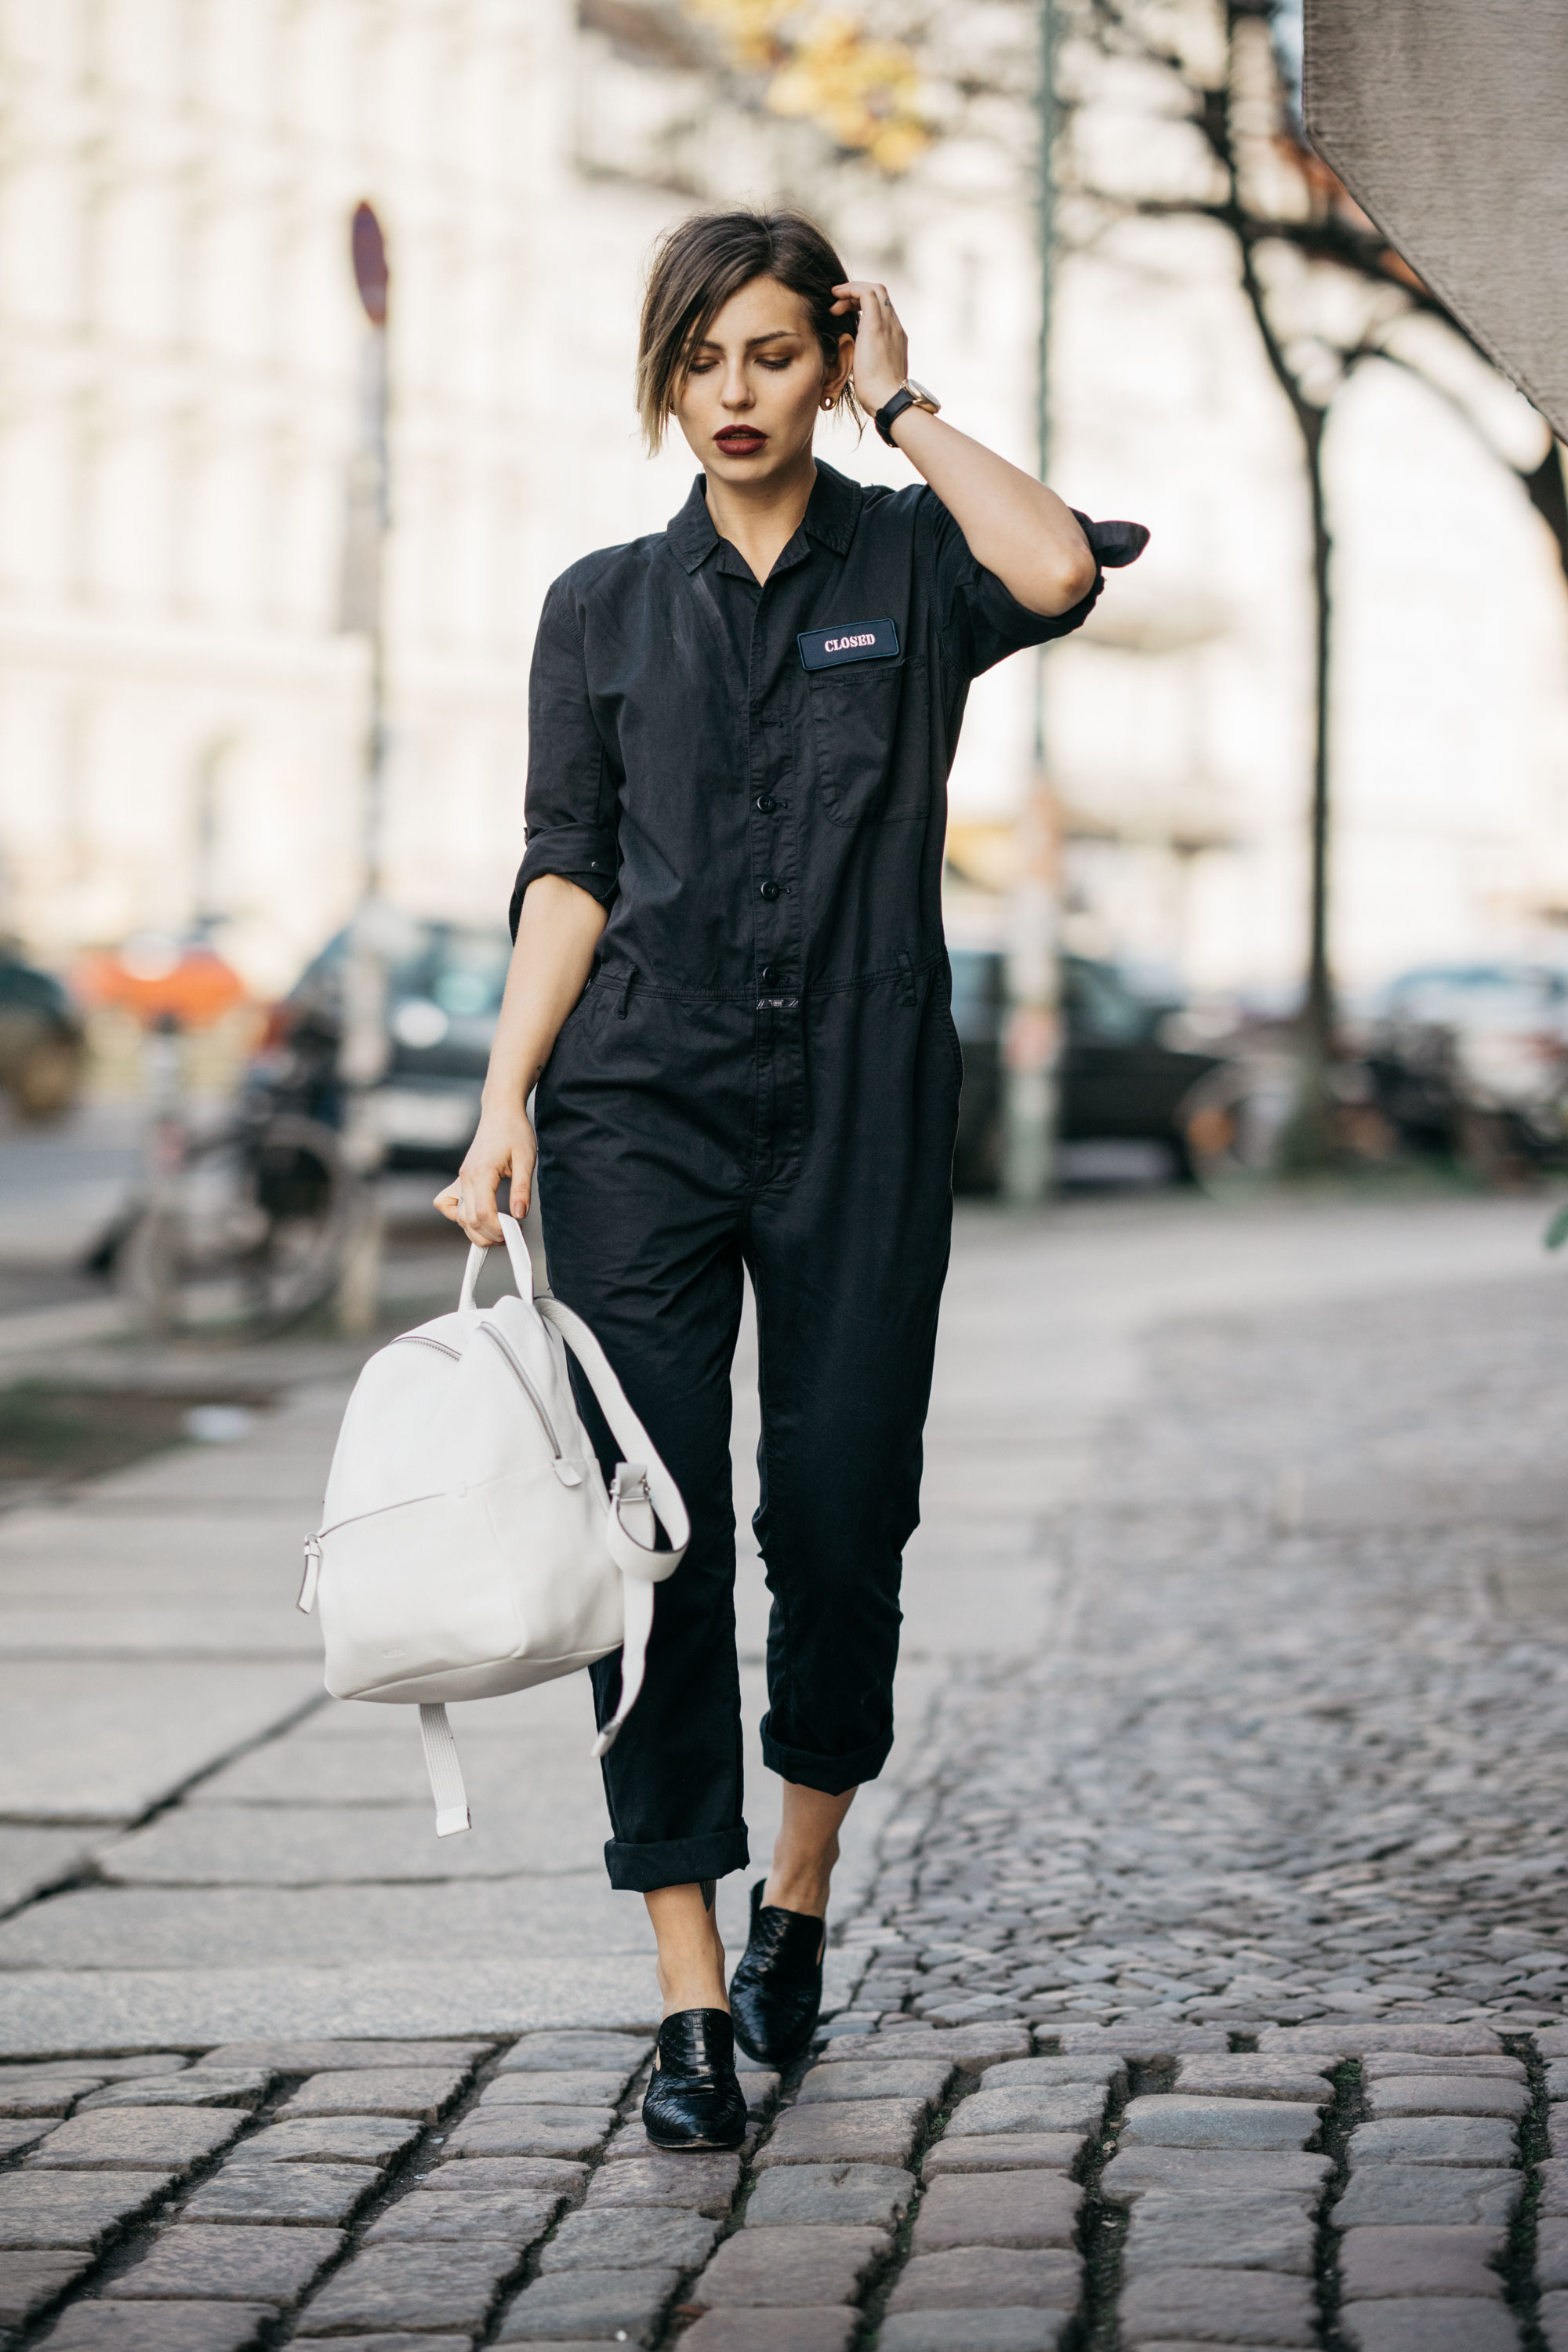 Masha Sedgwick & her stylish boilersuit from Closed | street style in Berlin